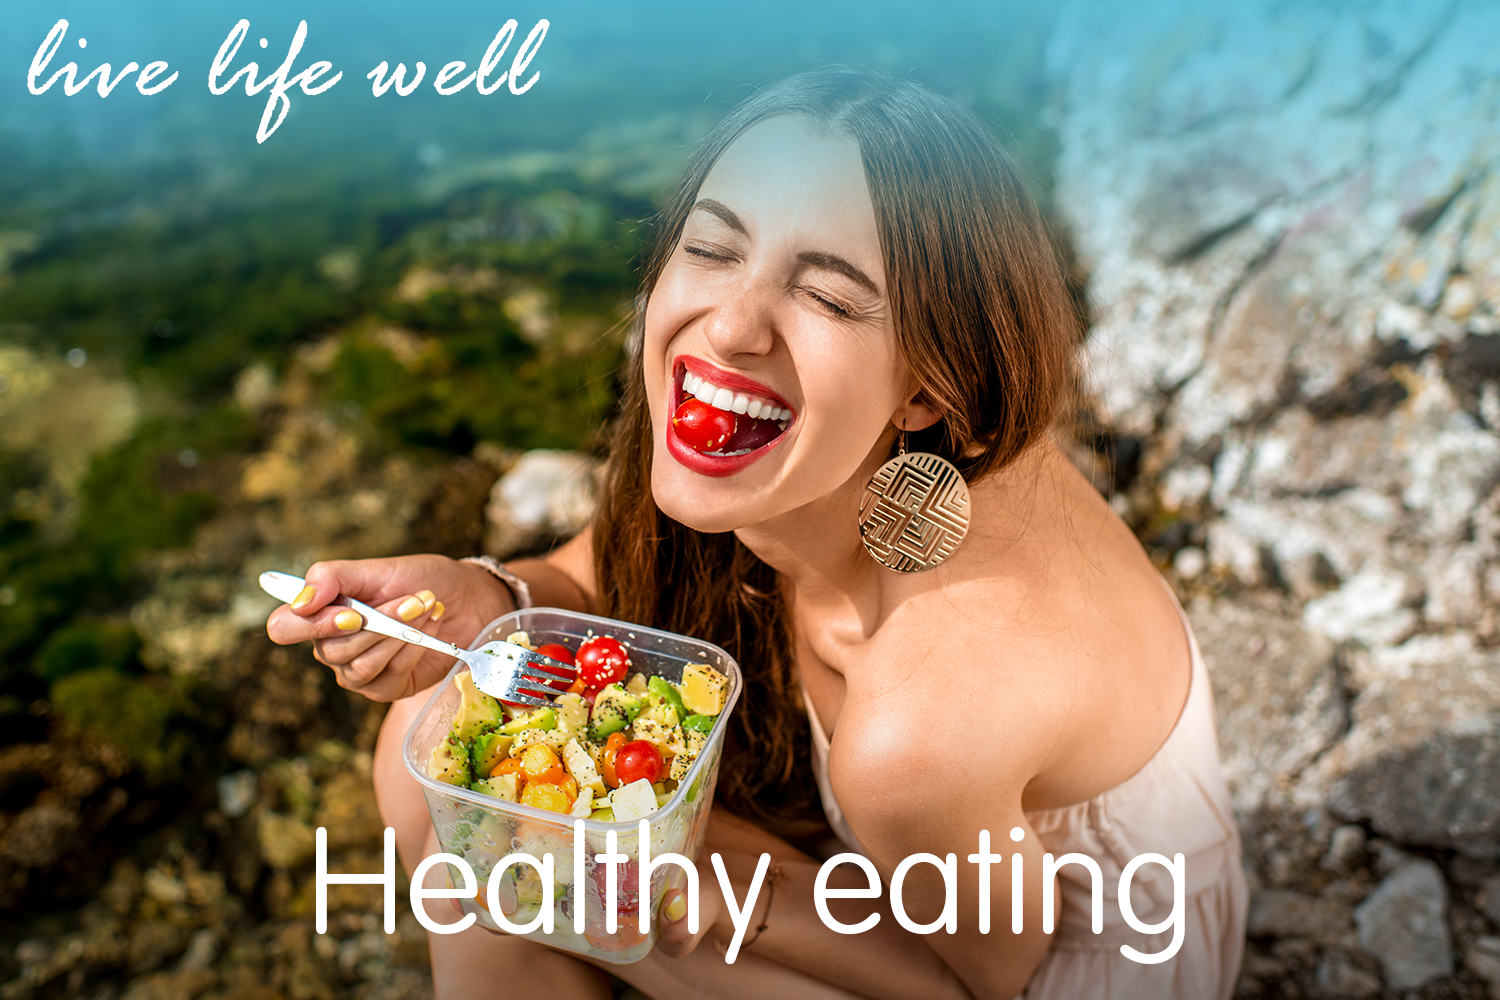 Our guide to healthy eating